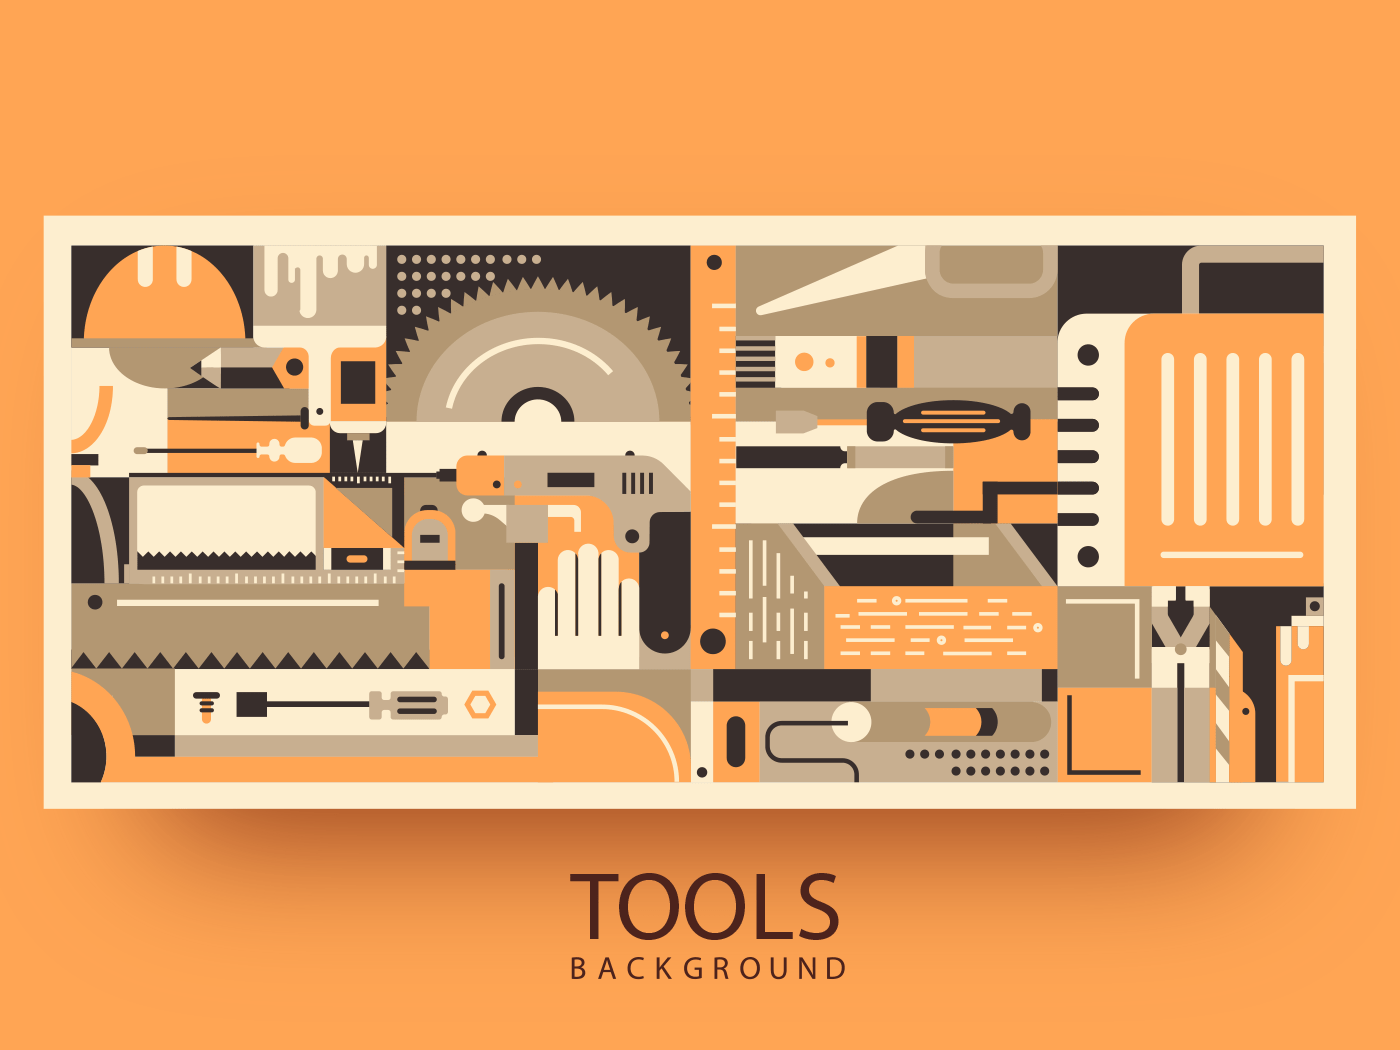 Materials and tools for building background